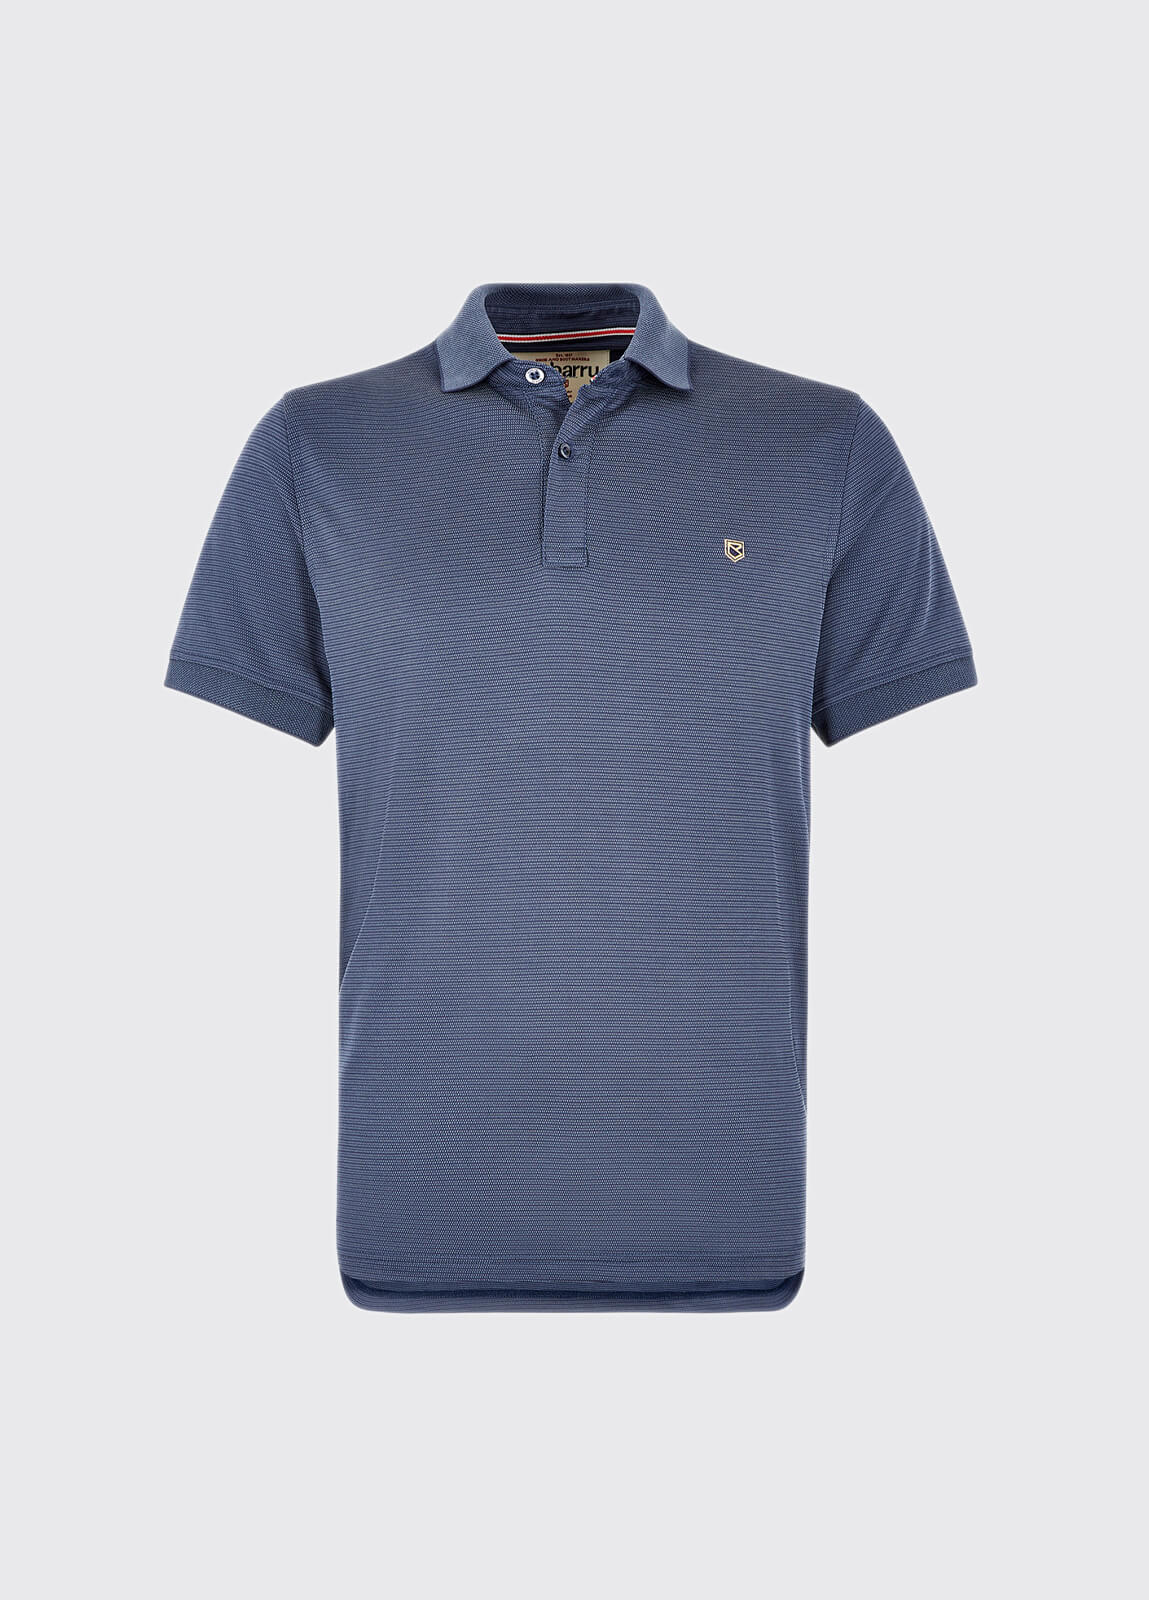 Crossmolina Polo Shirt - Navy